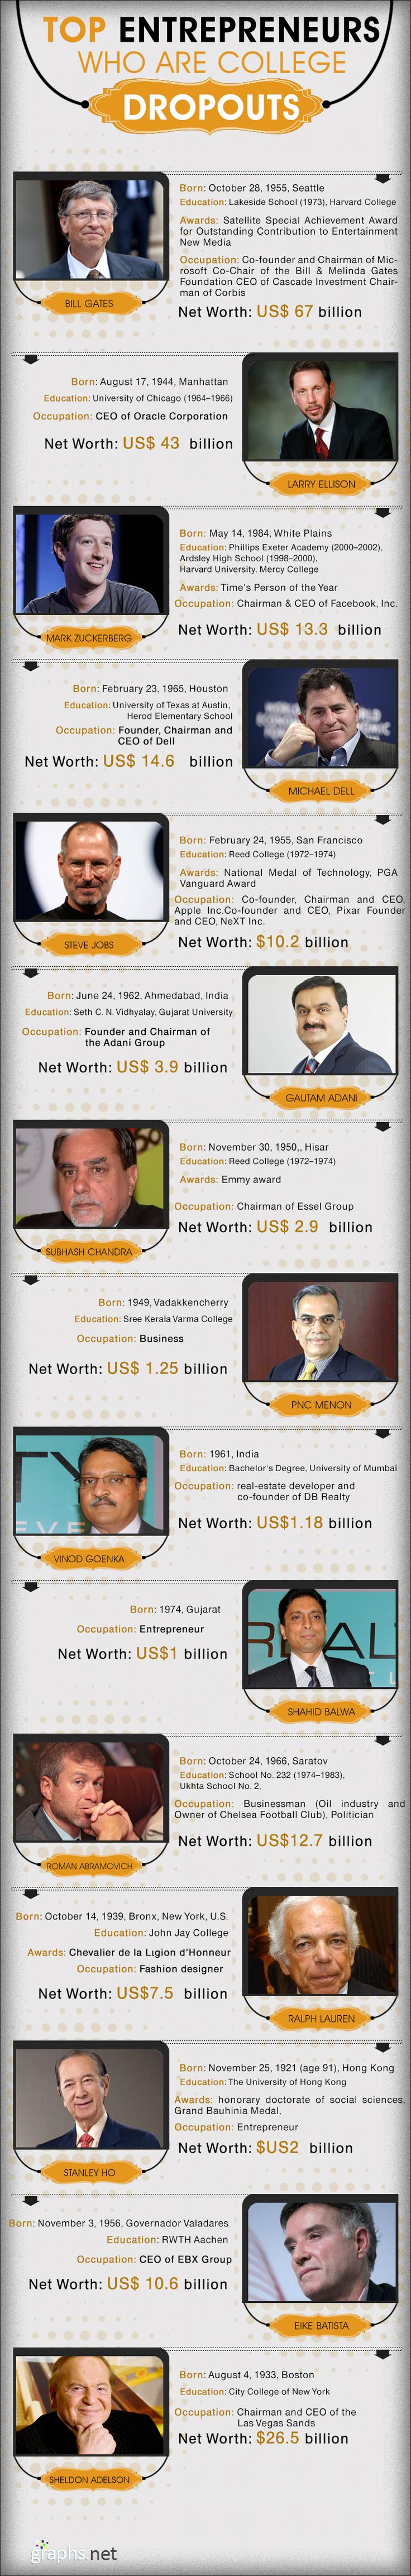 This info graphic provides information on list of top college dropouts who became entrepreneurs. Bill Gates is one of the famous entrepreneurs in the list, with net worth of $67 billion.